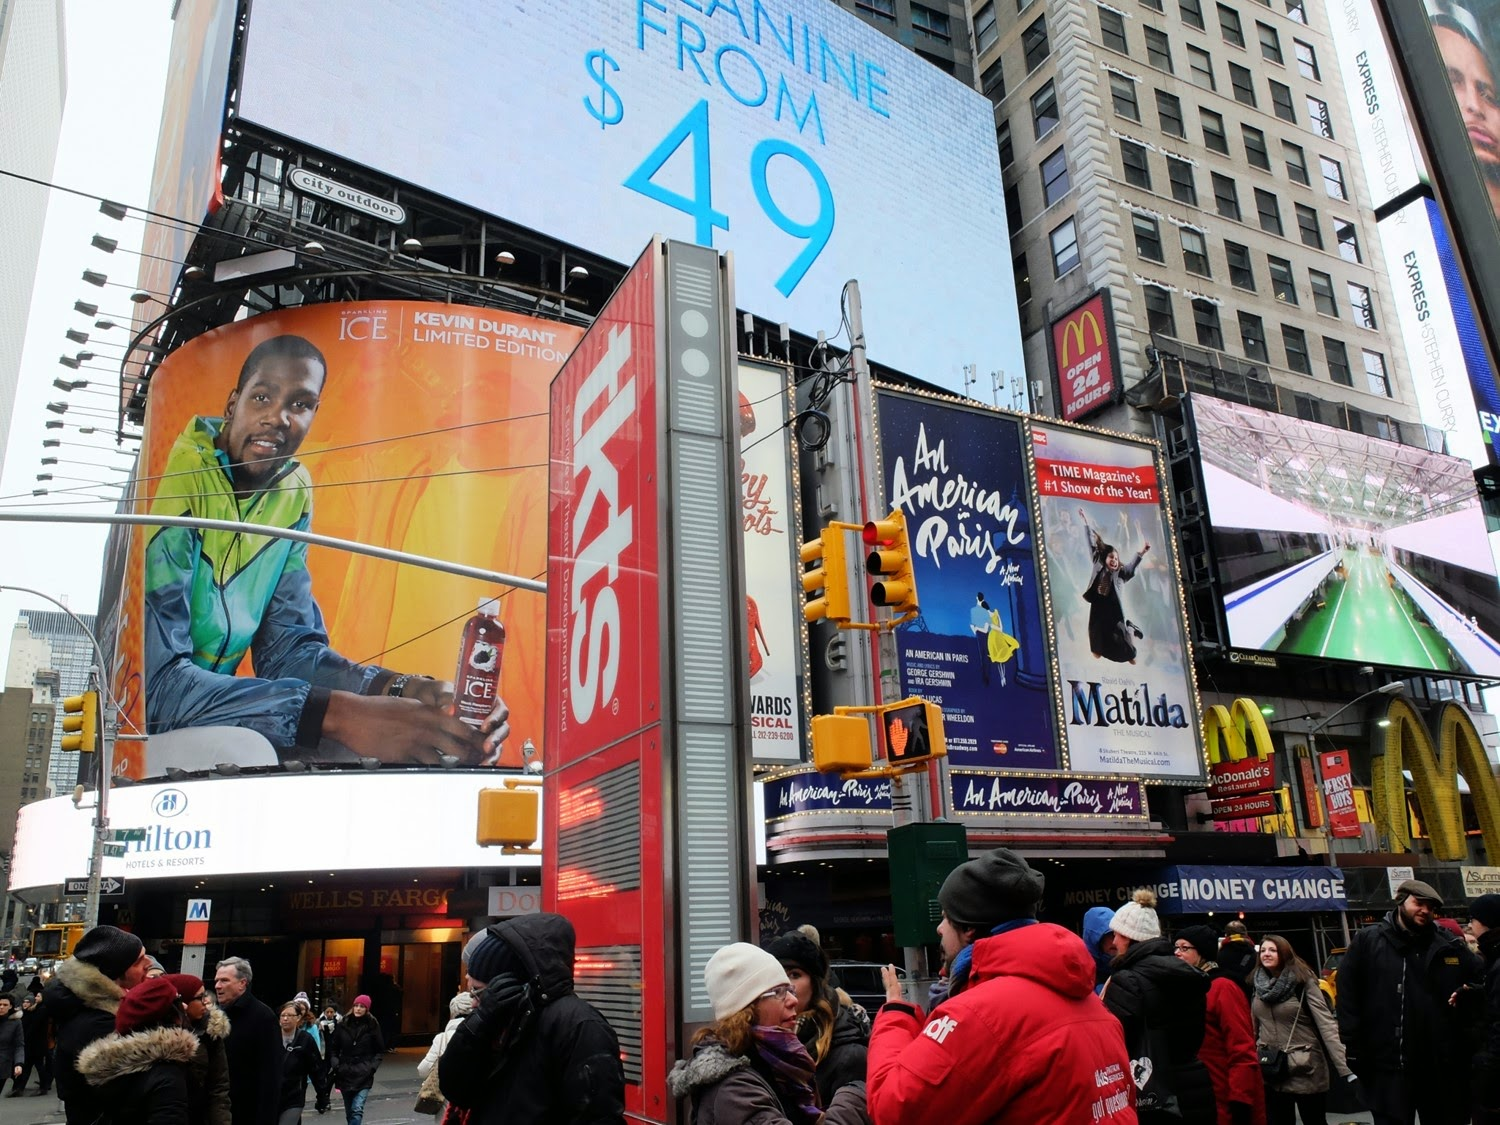 NY visiter New-York Times Square et Broadway TKTS Kevin Durant pub